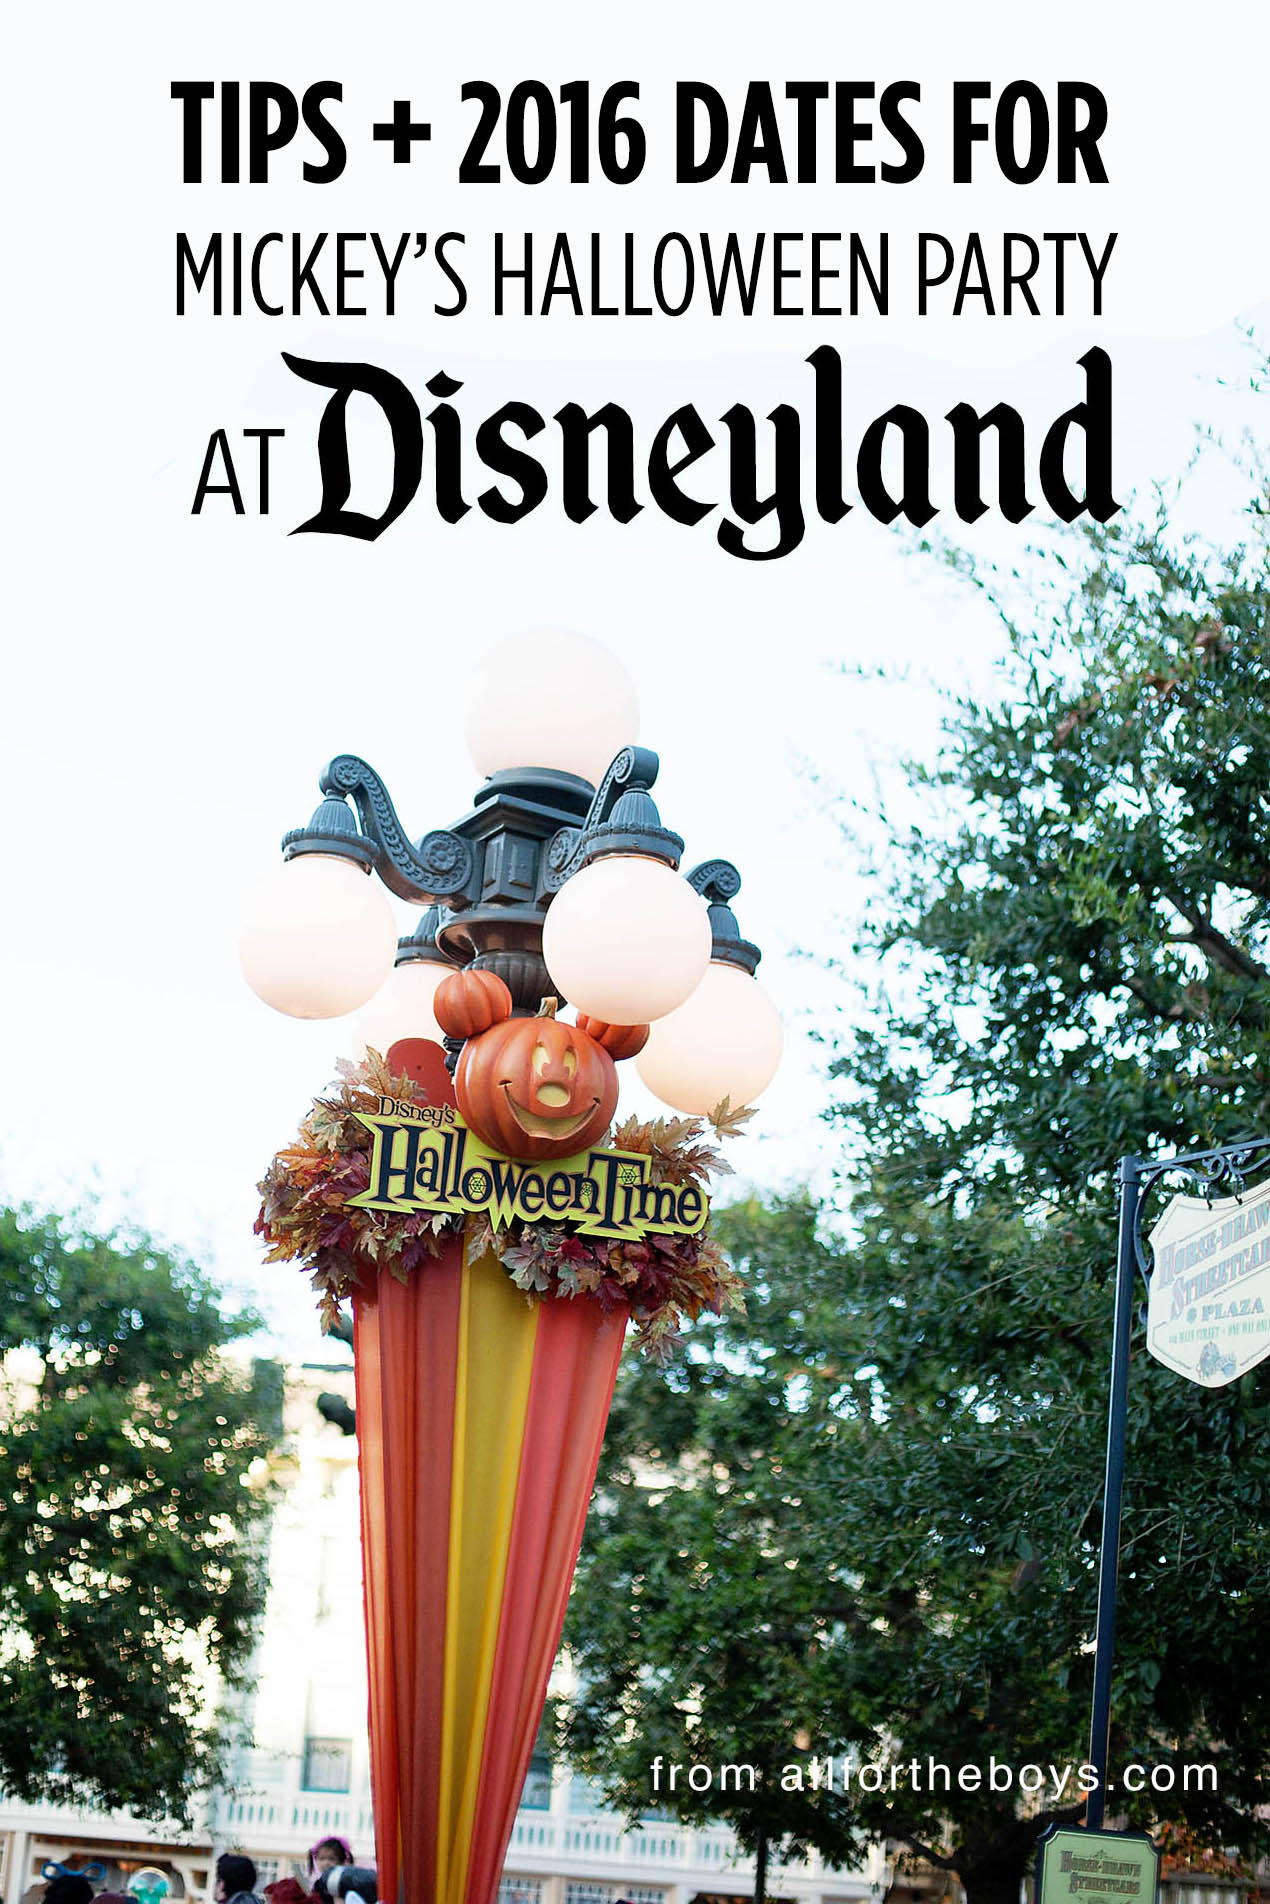 Tips + 2016 dates for Mickey's Halloween Party at Disneyland